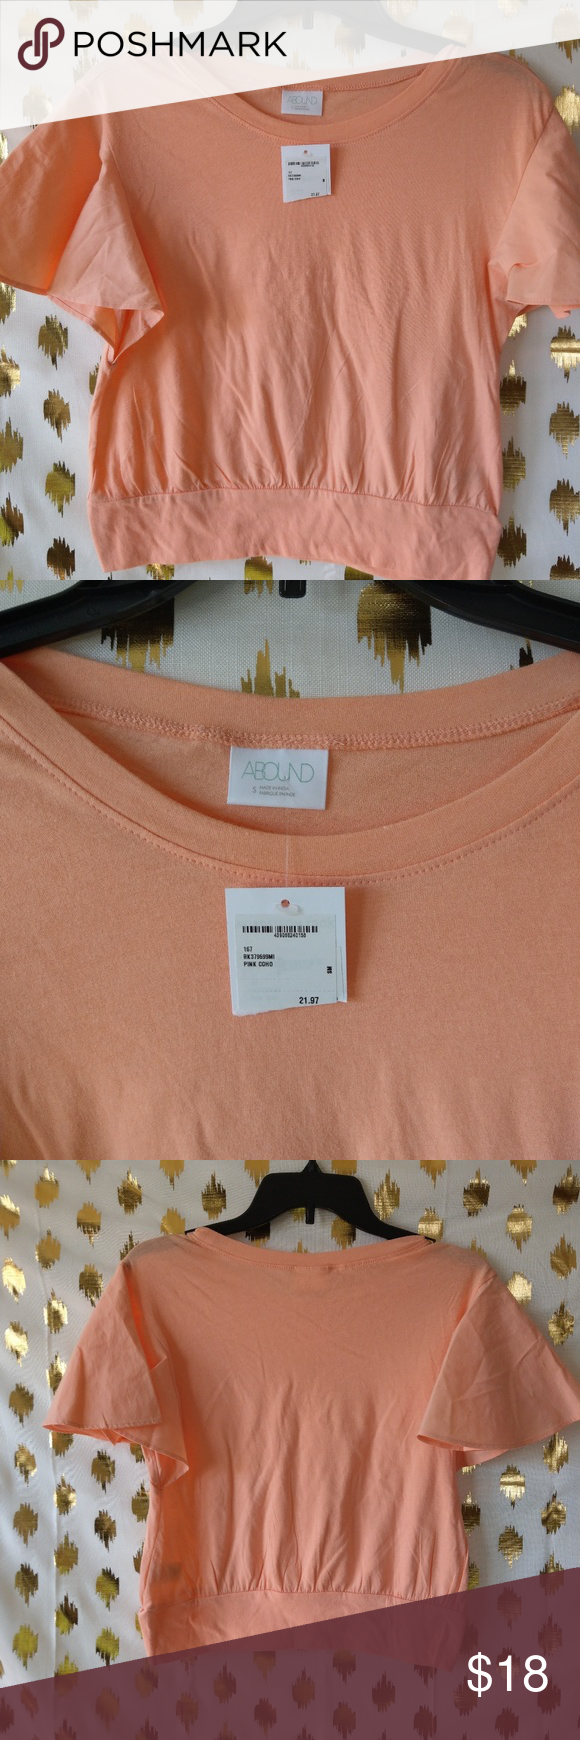 d78f6e968fe Abound Coral Crop top SZ S Cute ruffle sleeve crop top. Coral. NWT, no  flaws. Any questions please ask. I am always up for offers. Thank you for  looking.